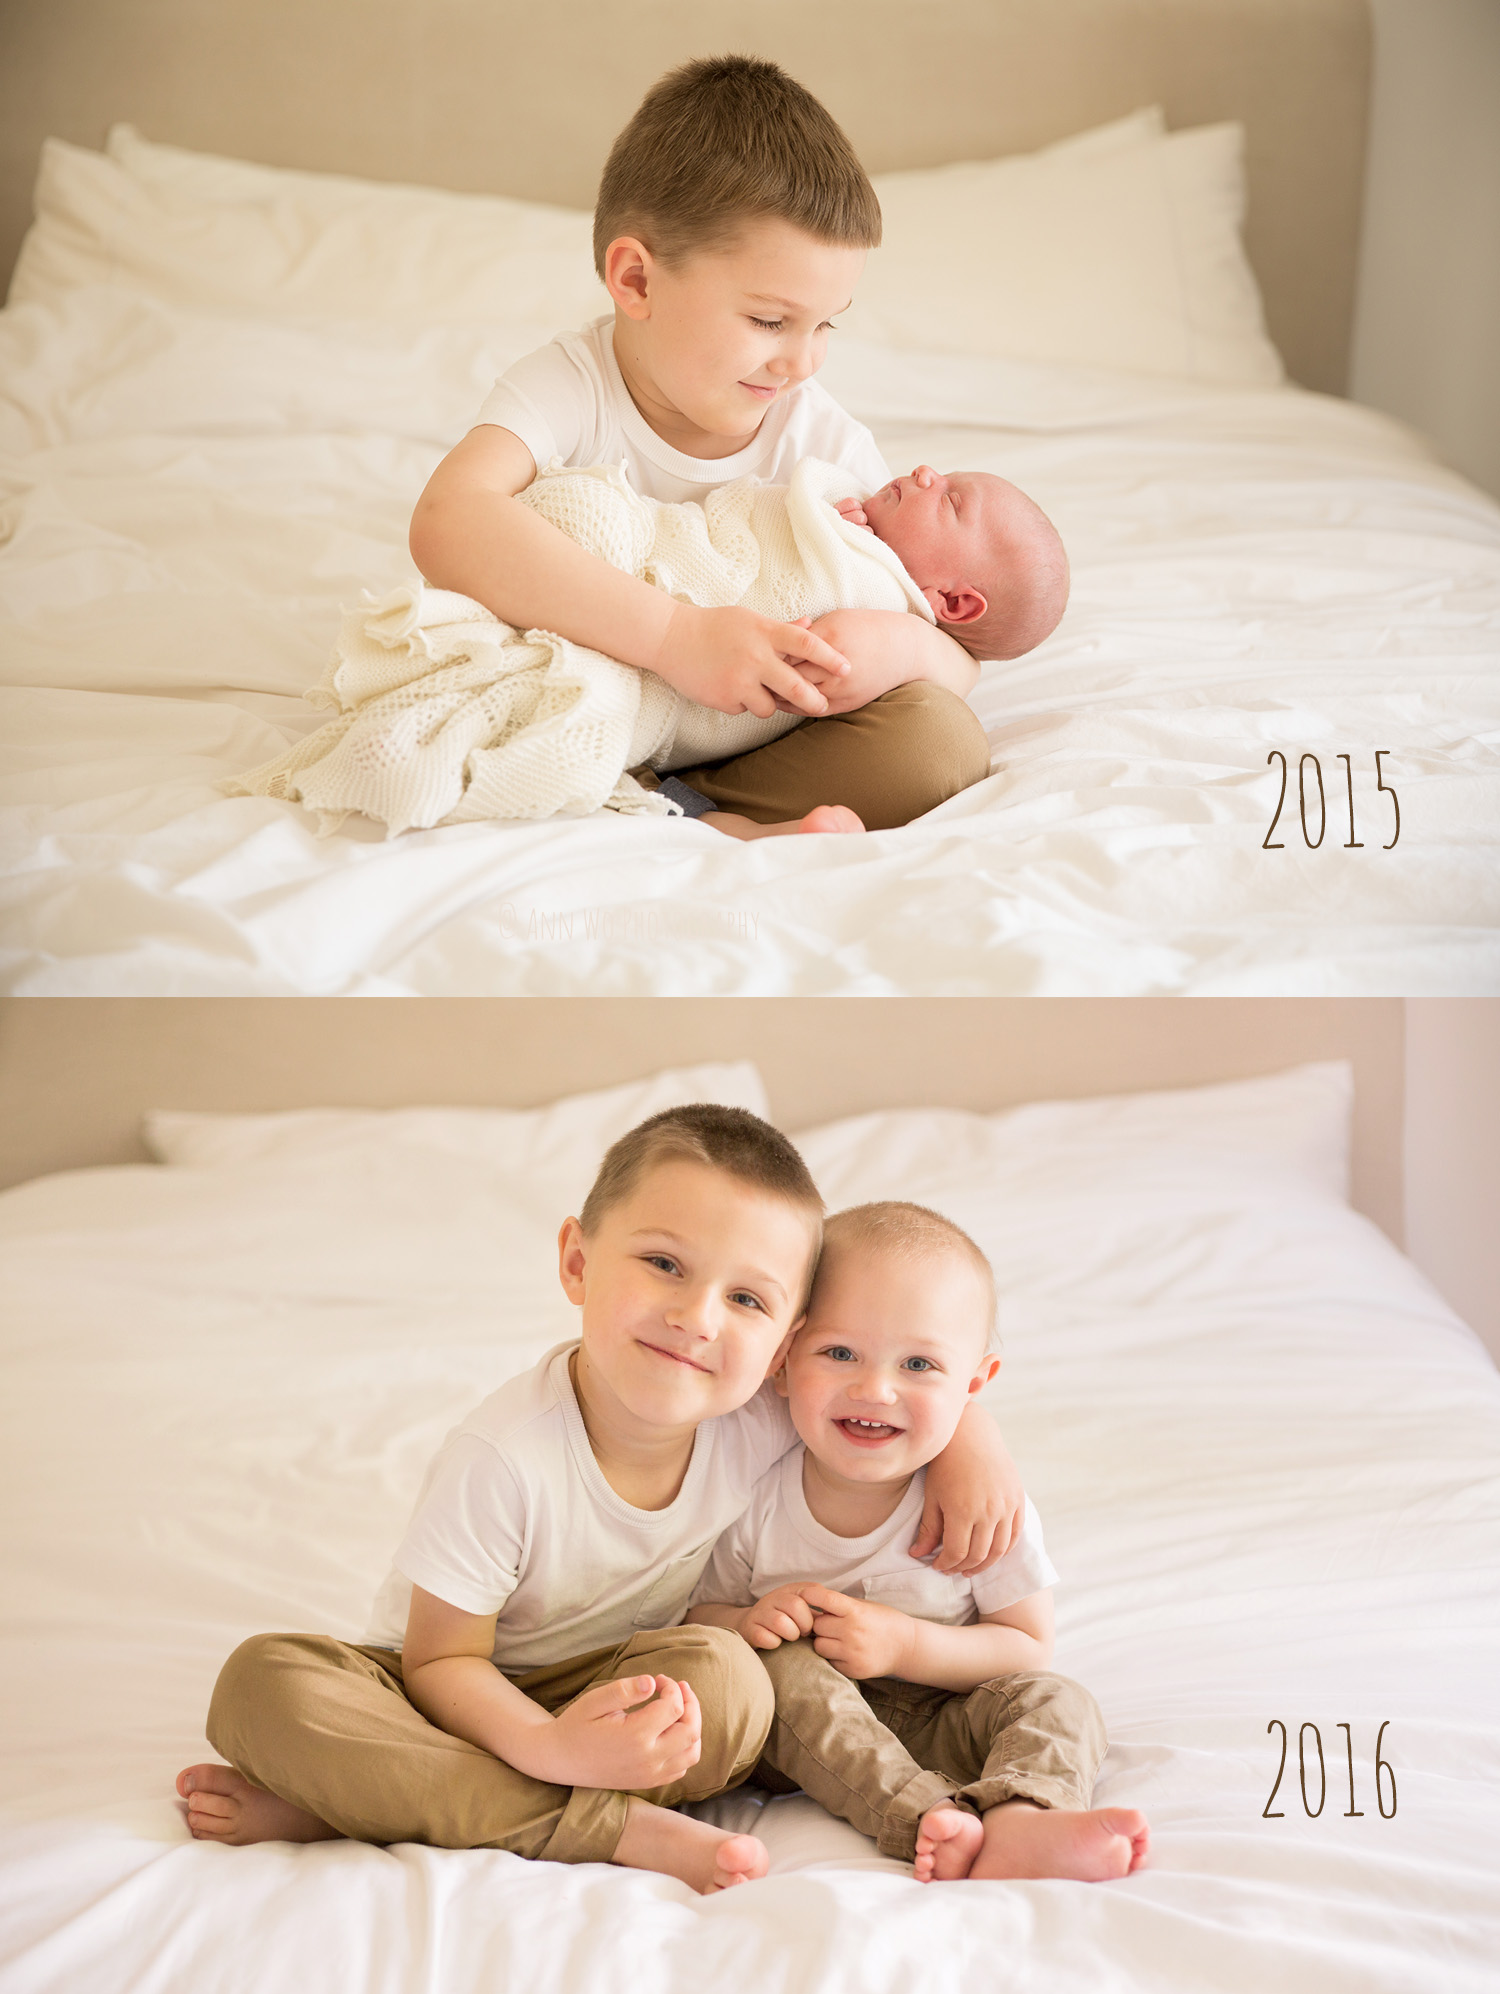 brothers - baby-photography-london ann wo